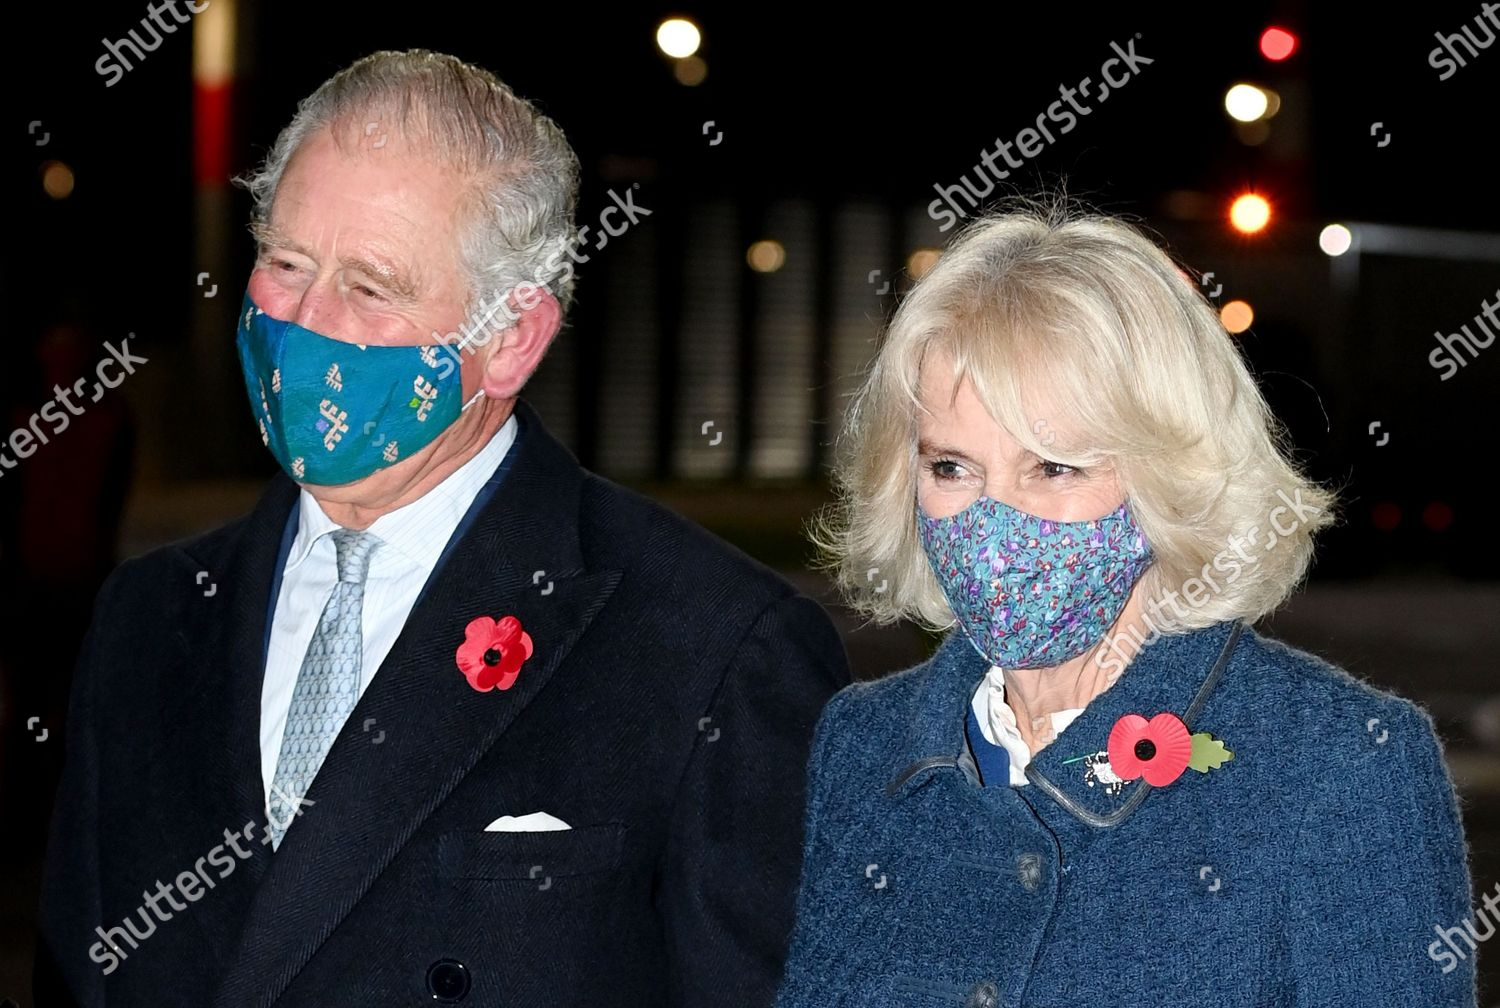 prince-charles-and-camilla-duchess-of-cornwall-visit-to-berlin-germany-shutterstock-editorial-11016152m.jpg